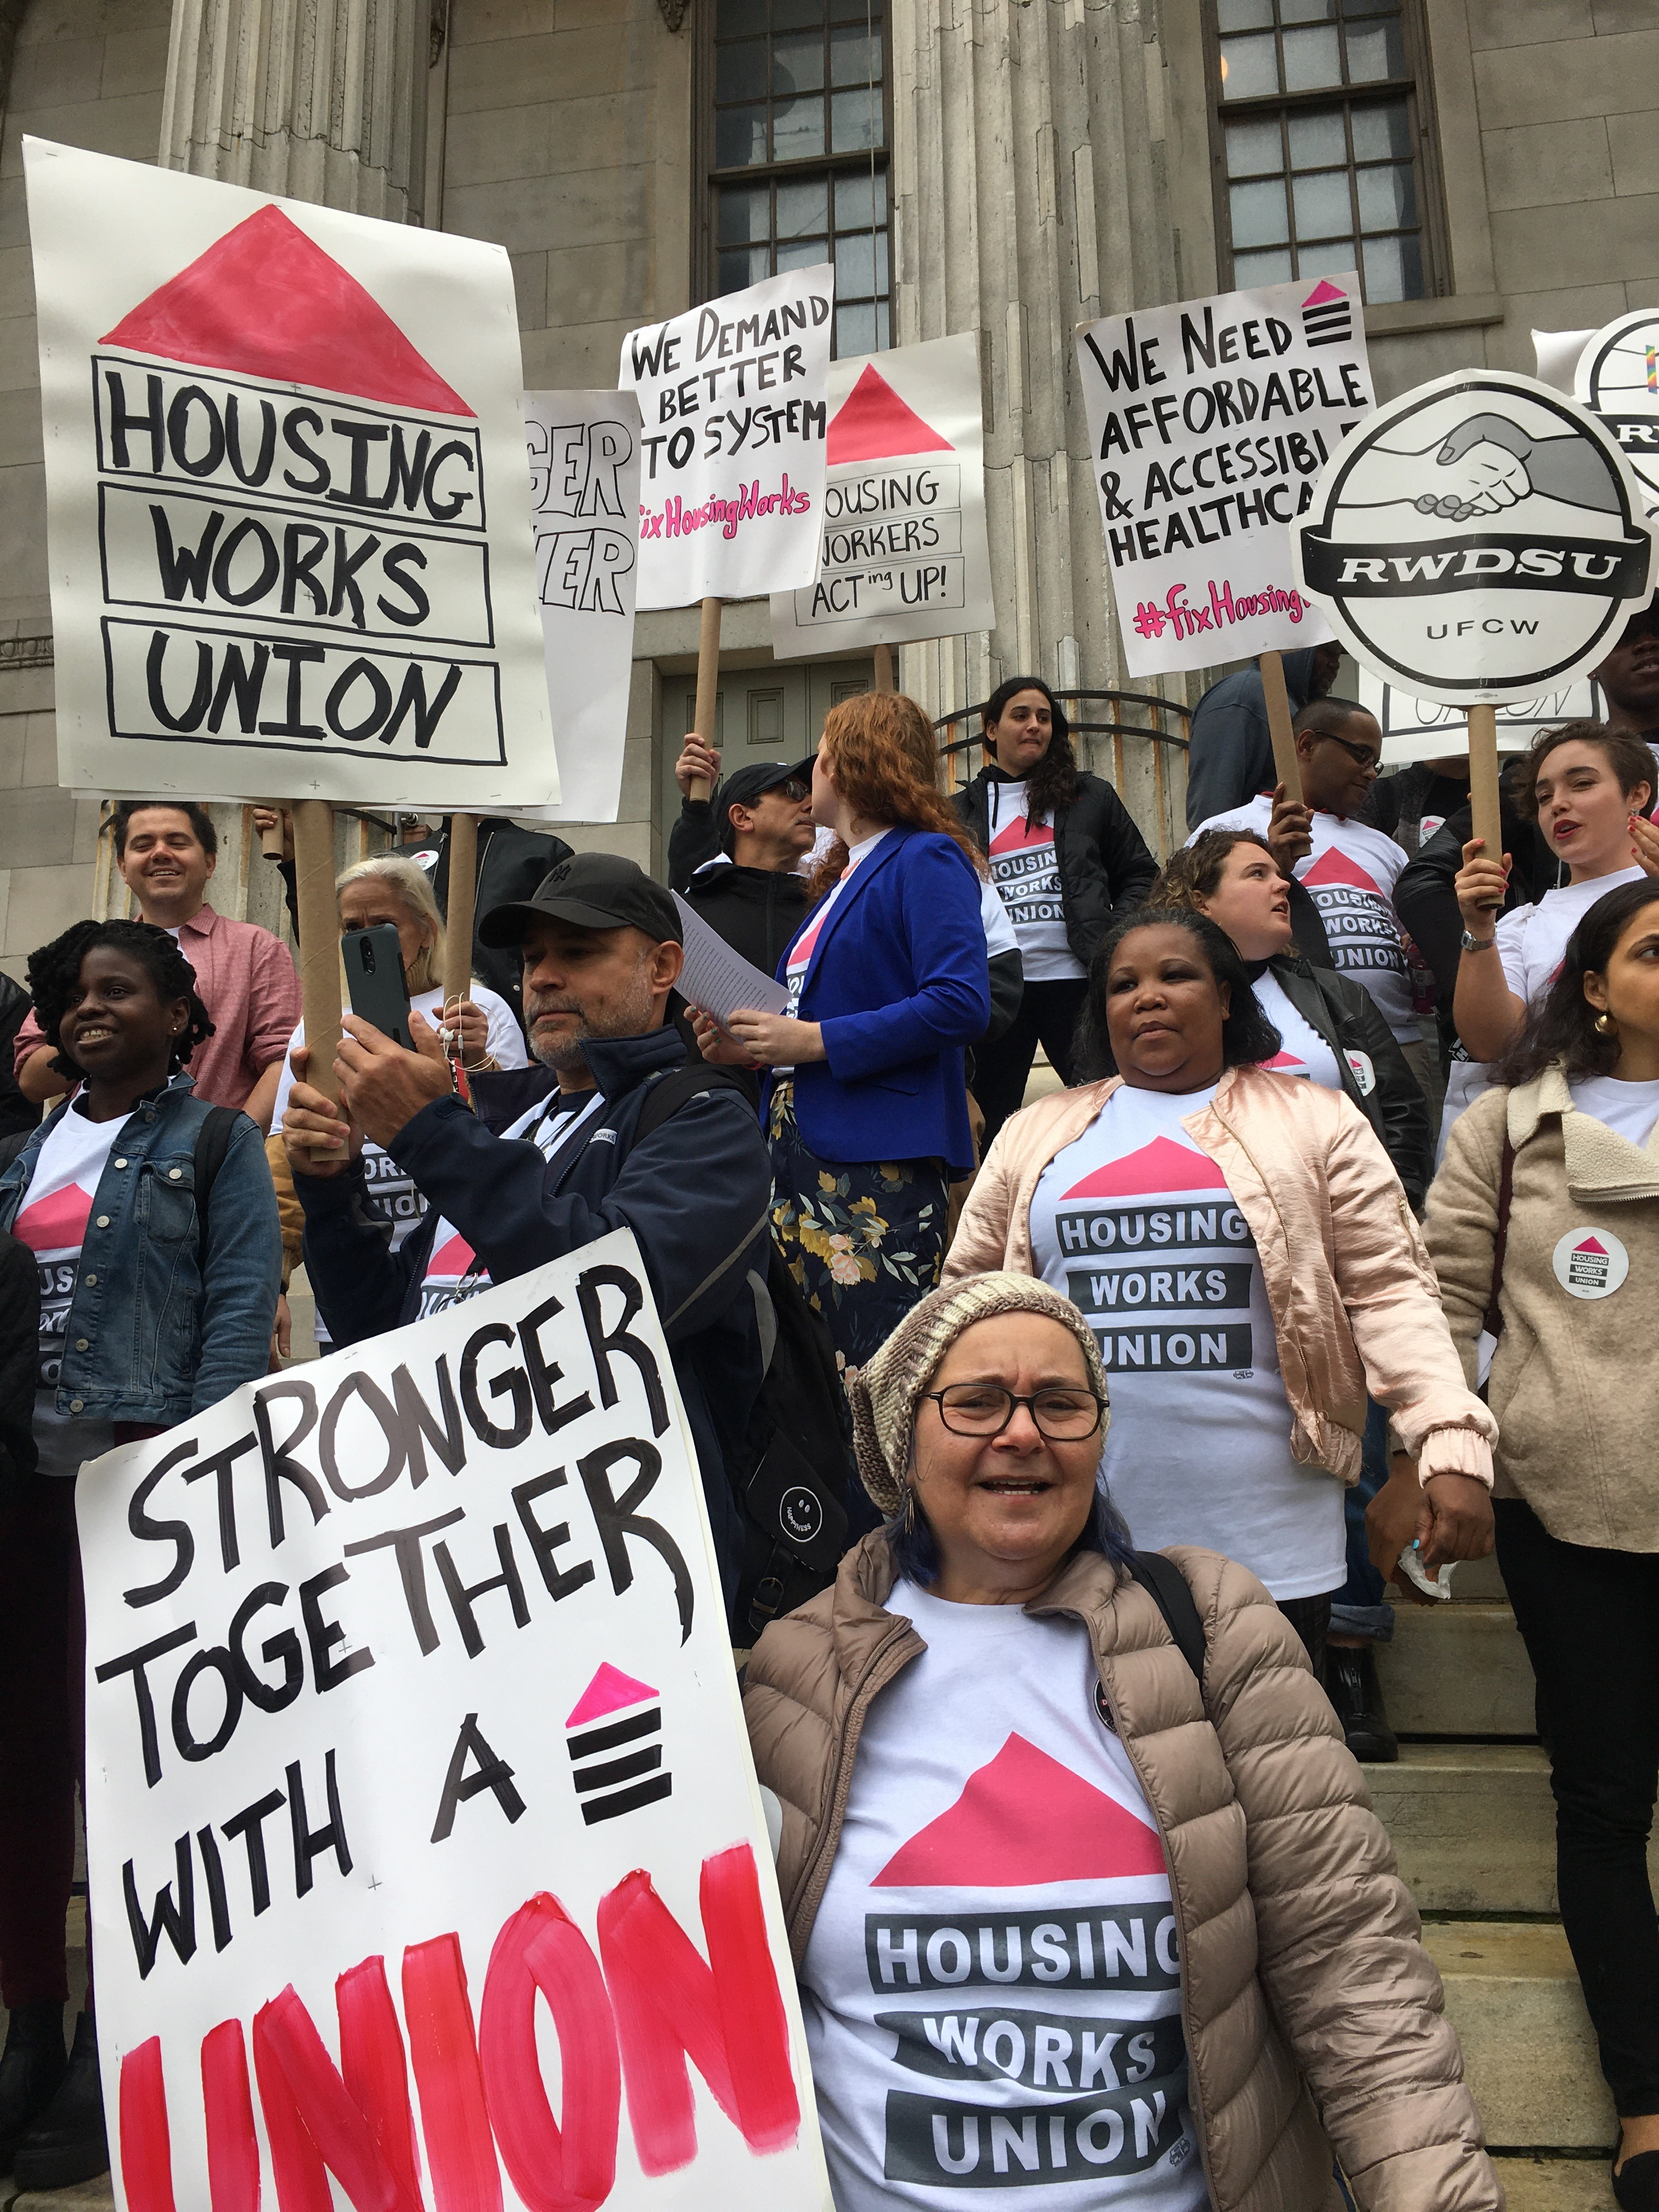 'Do LGBT Rights Stop When You Get a Job?' The Fight For Unionization At Housing Works